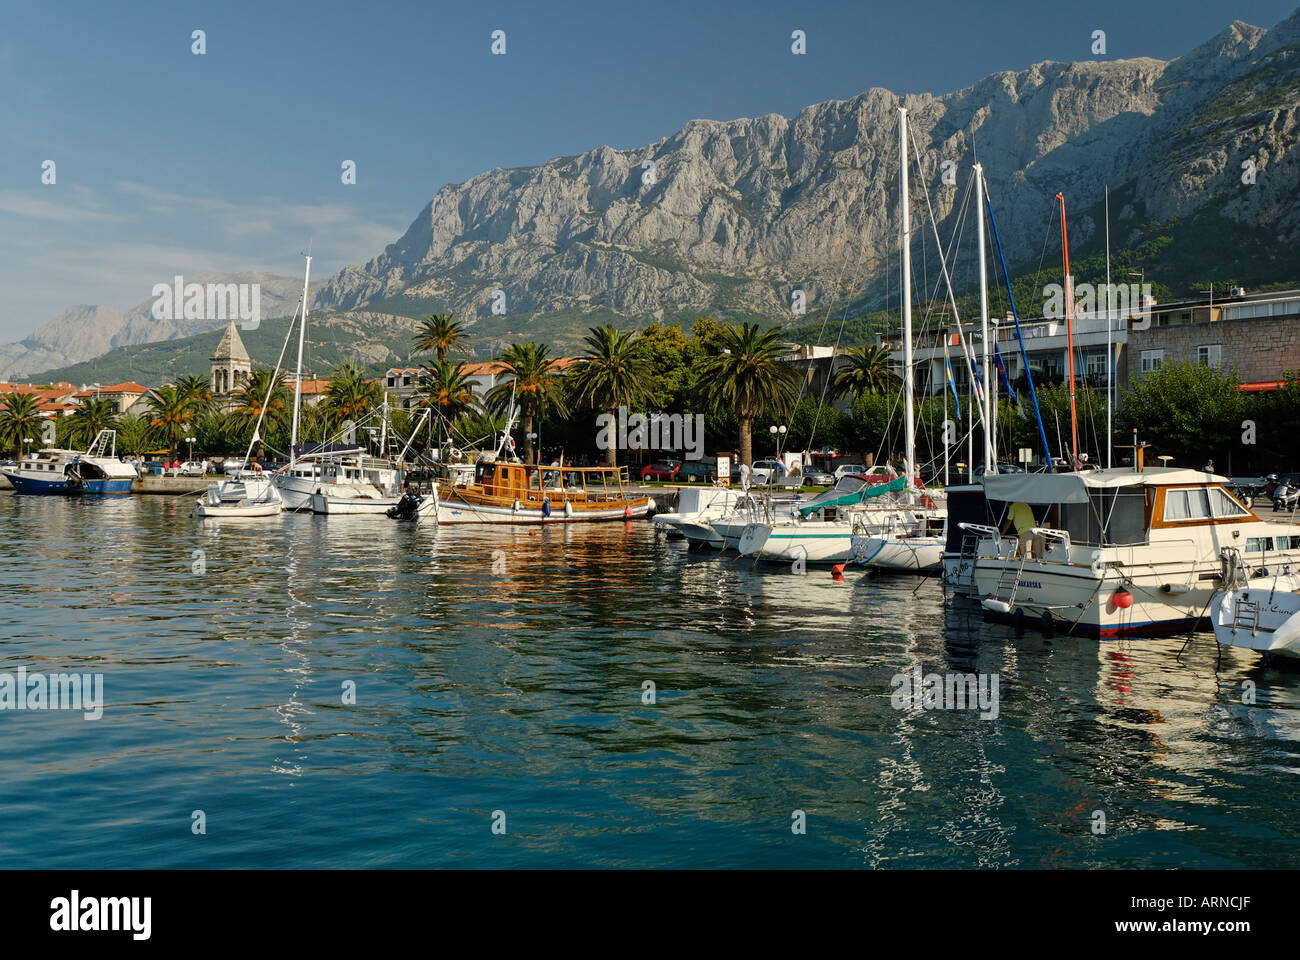 Historic city of Makarska at the Biokovo mountains, Dalmatia, Croatia Stock Photo